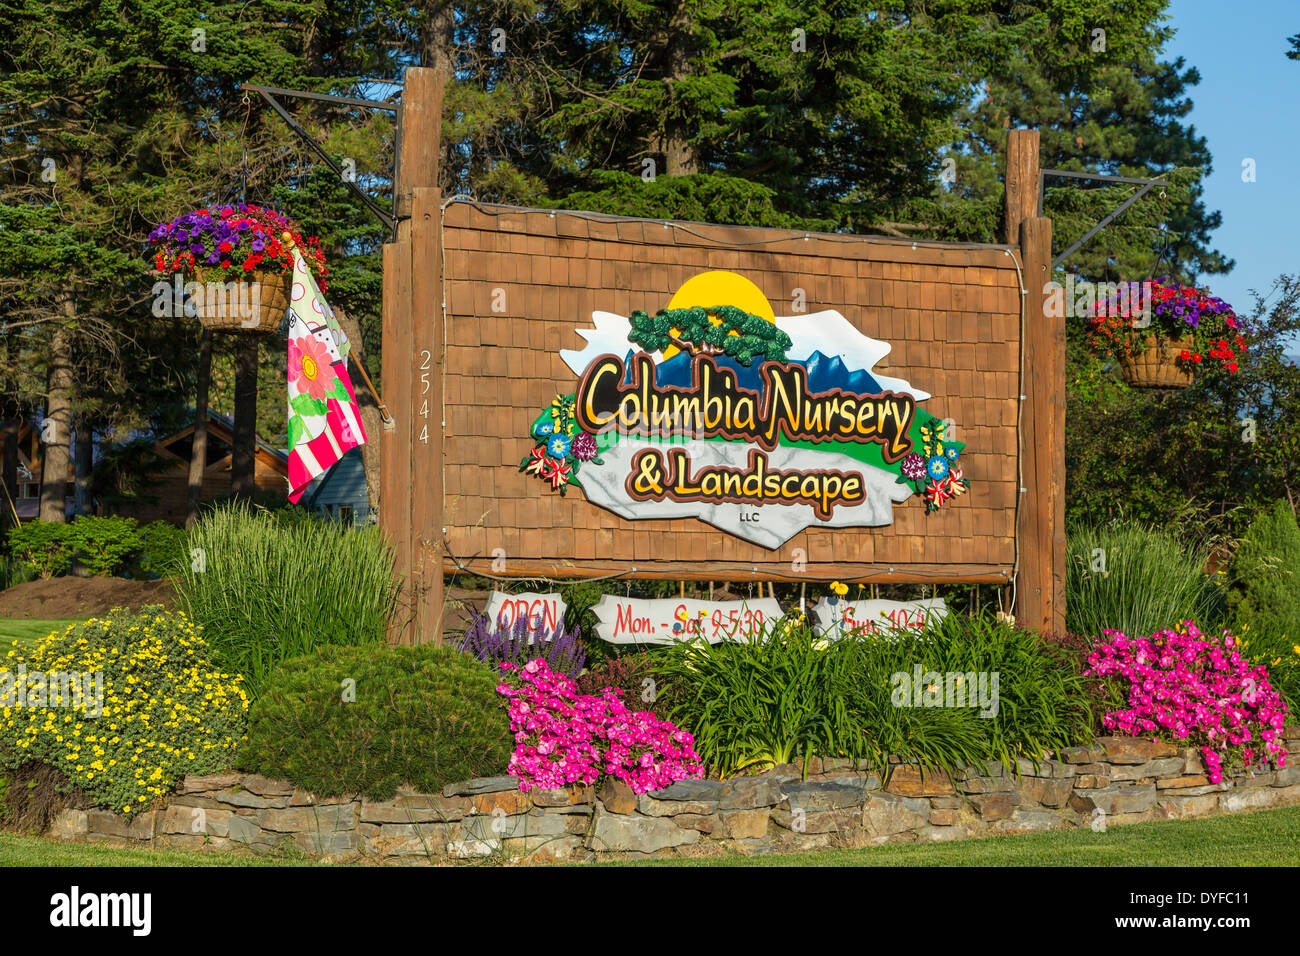 The Columbia Nursery and Landscape outdoor sign in Columbia Falls, Montana, USA. - Stock Image